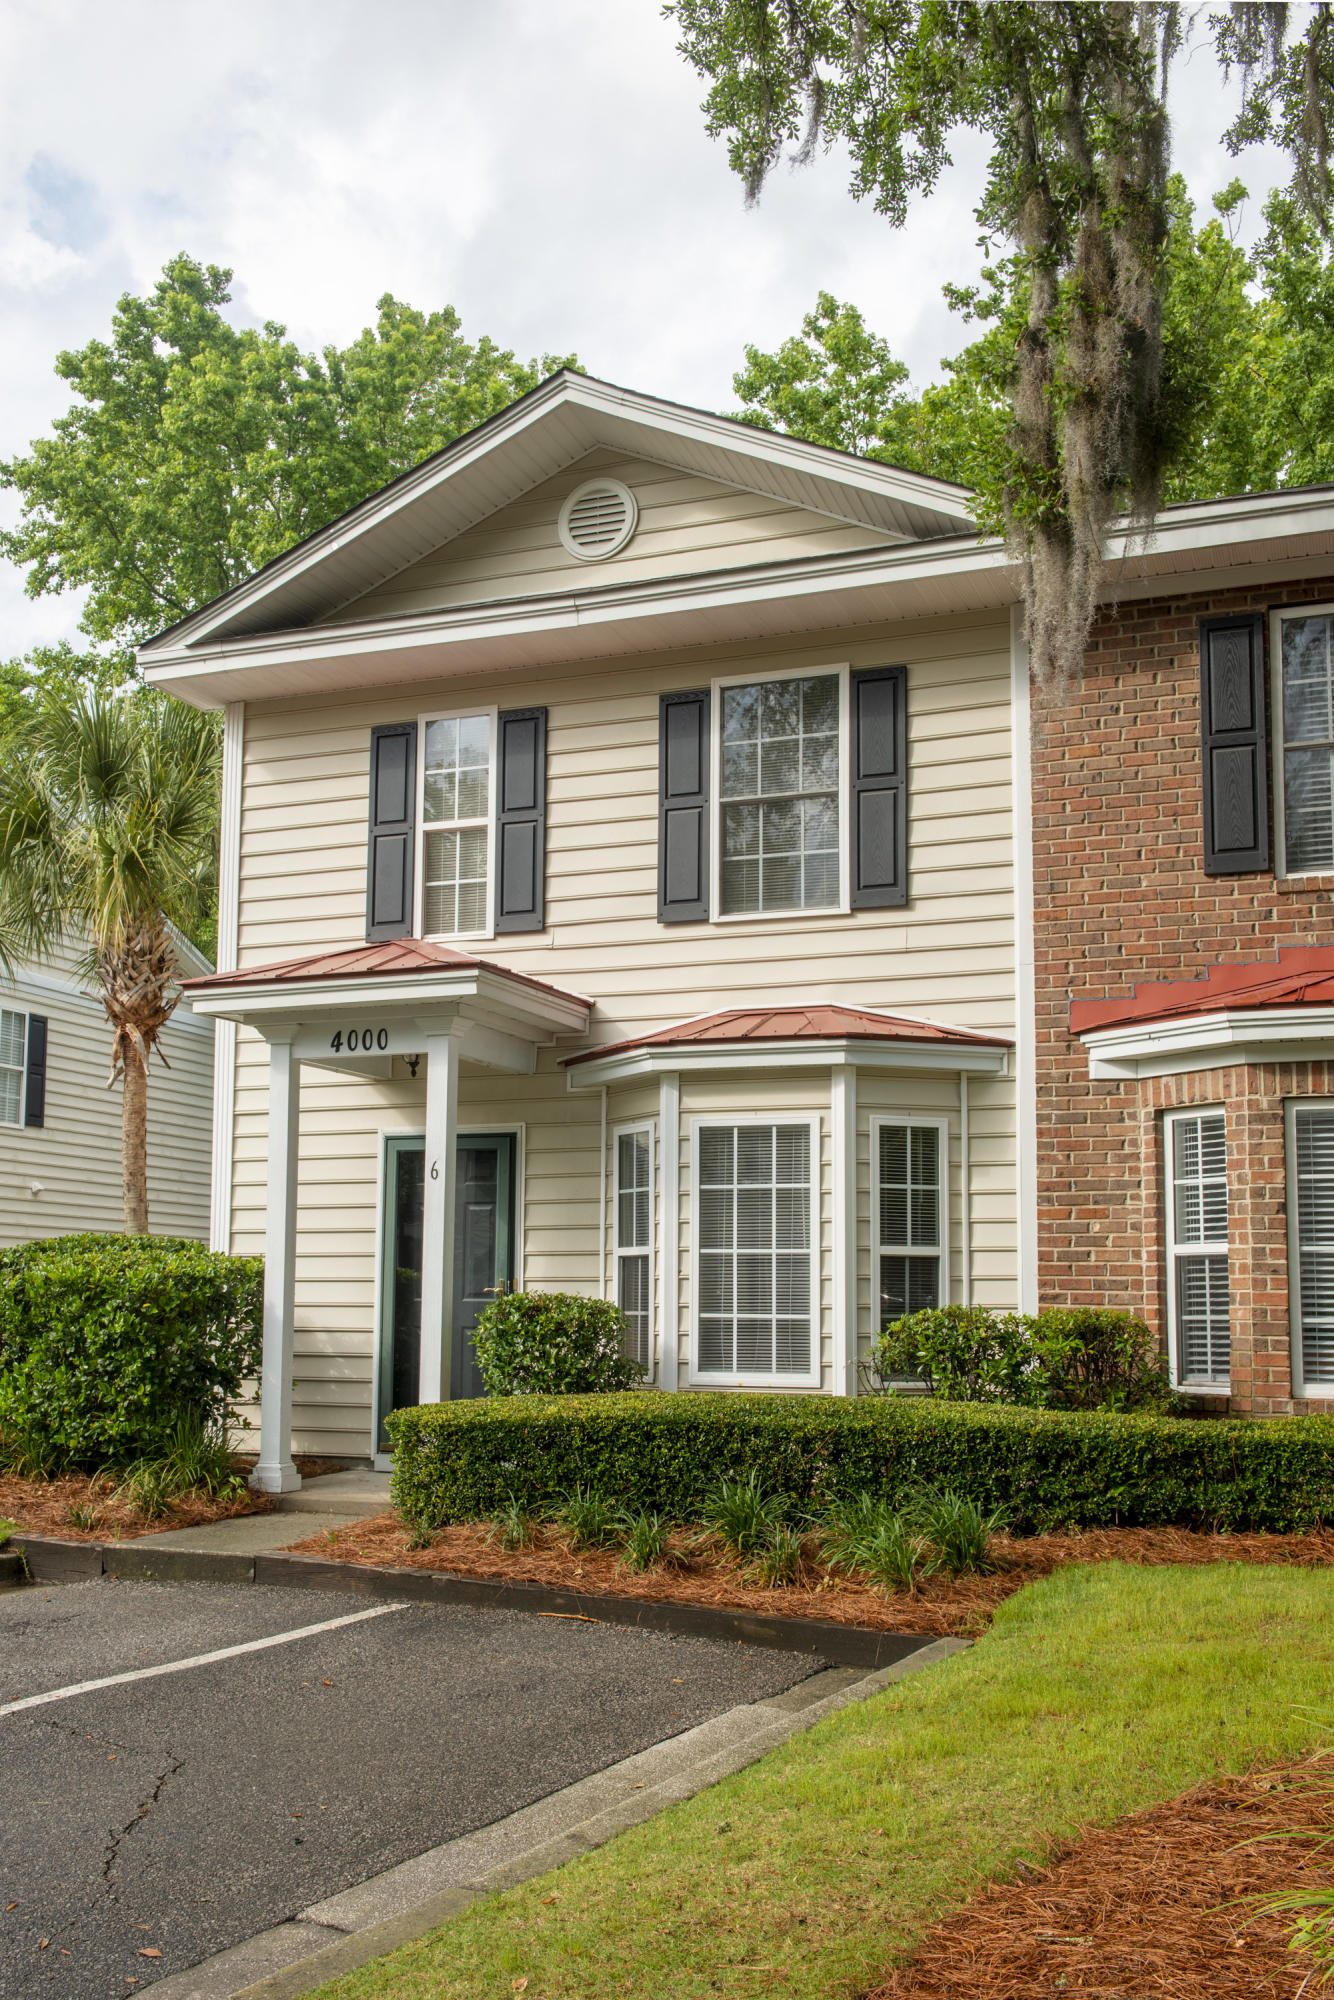 Radcliffe Place Homes For Sale - 4000 Radcliffe Place, Charleston, SC - 20